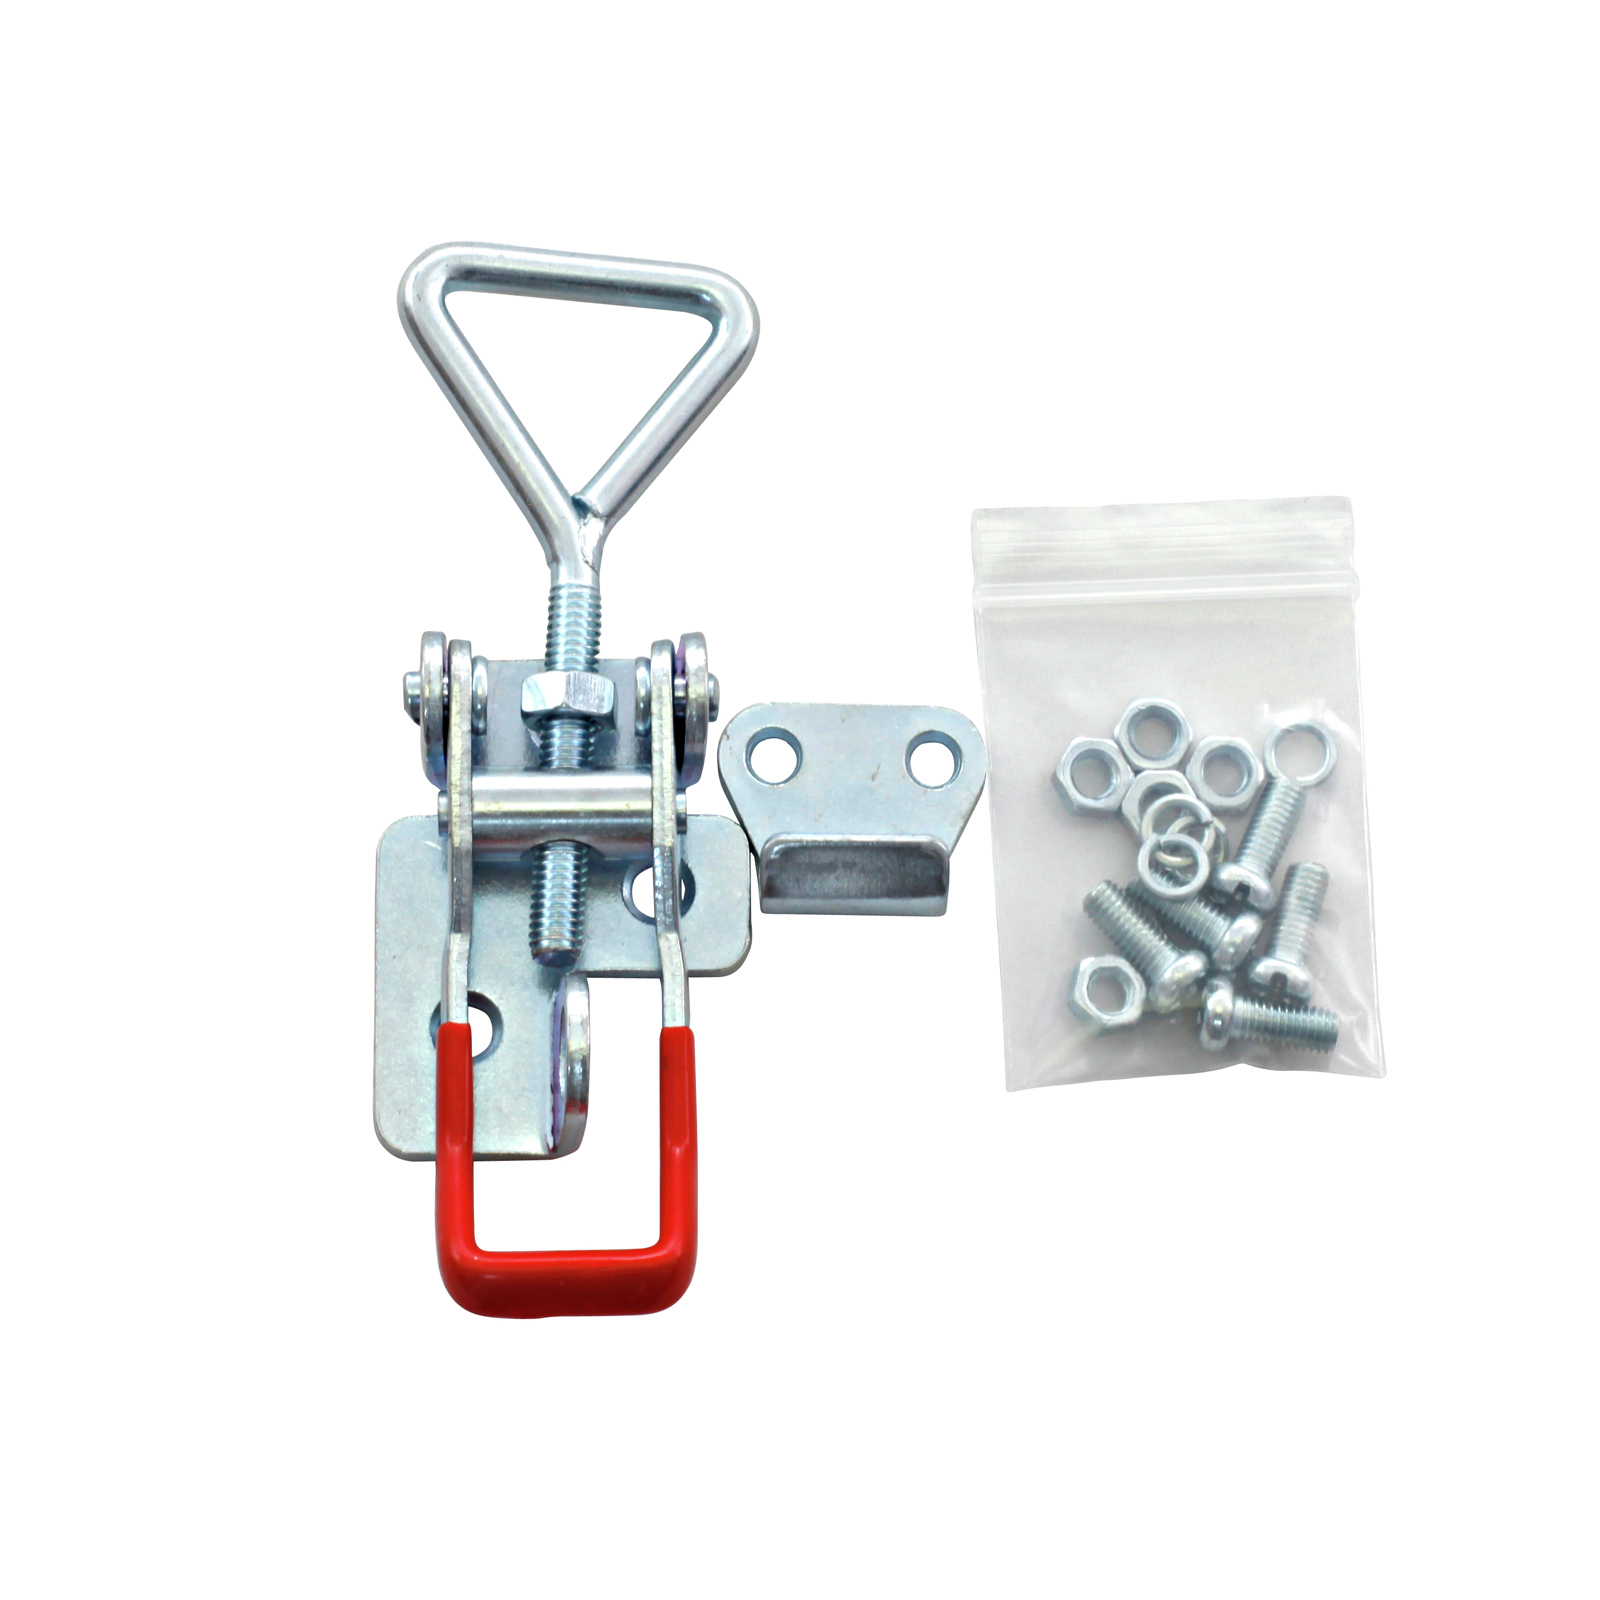 Syneco 115 - 125mm Zinc Plated Adjustable Toggle Latch